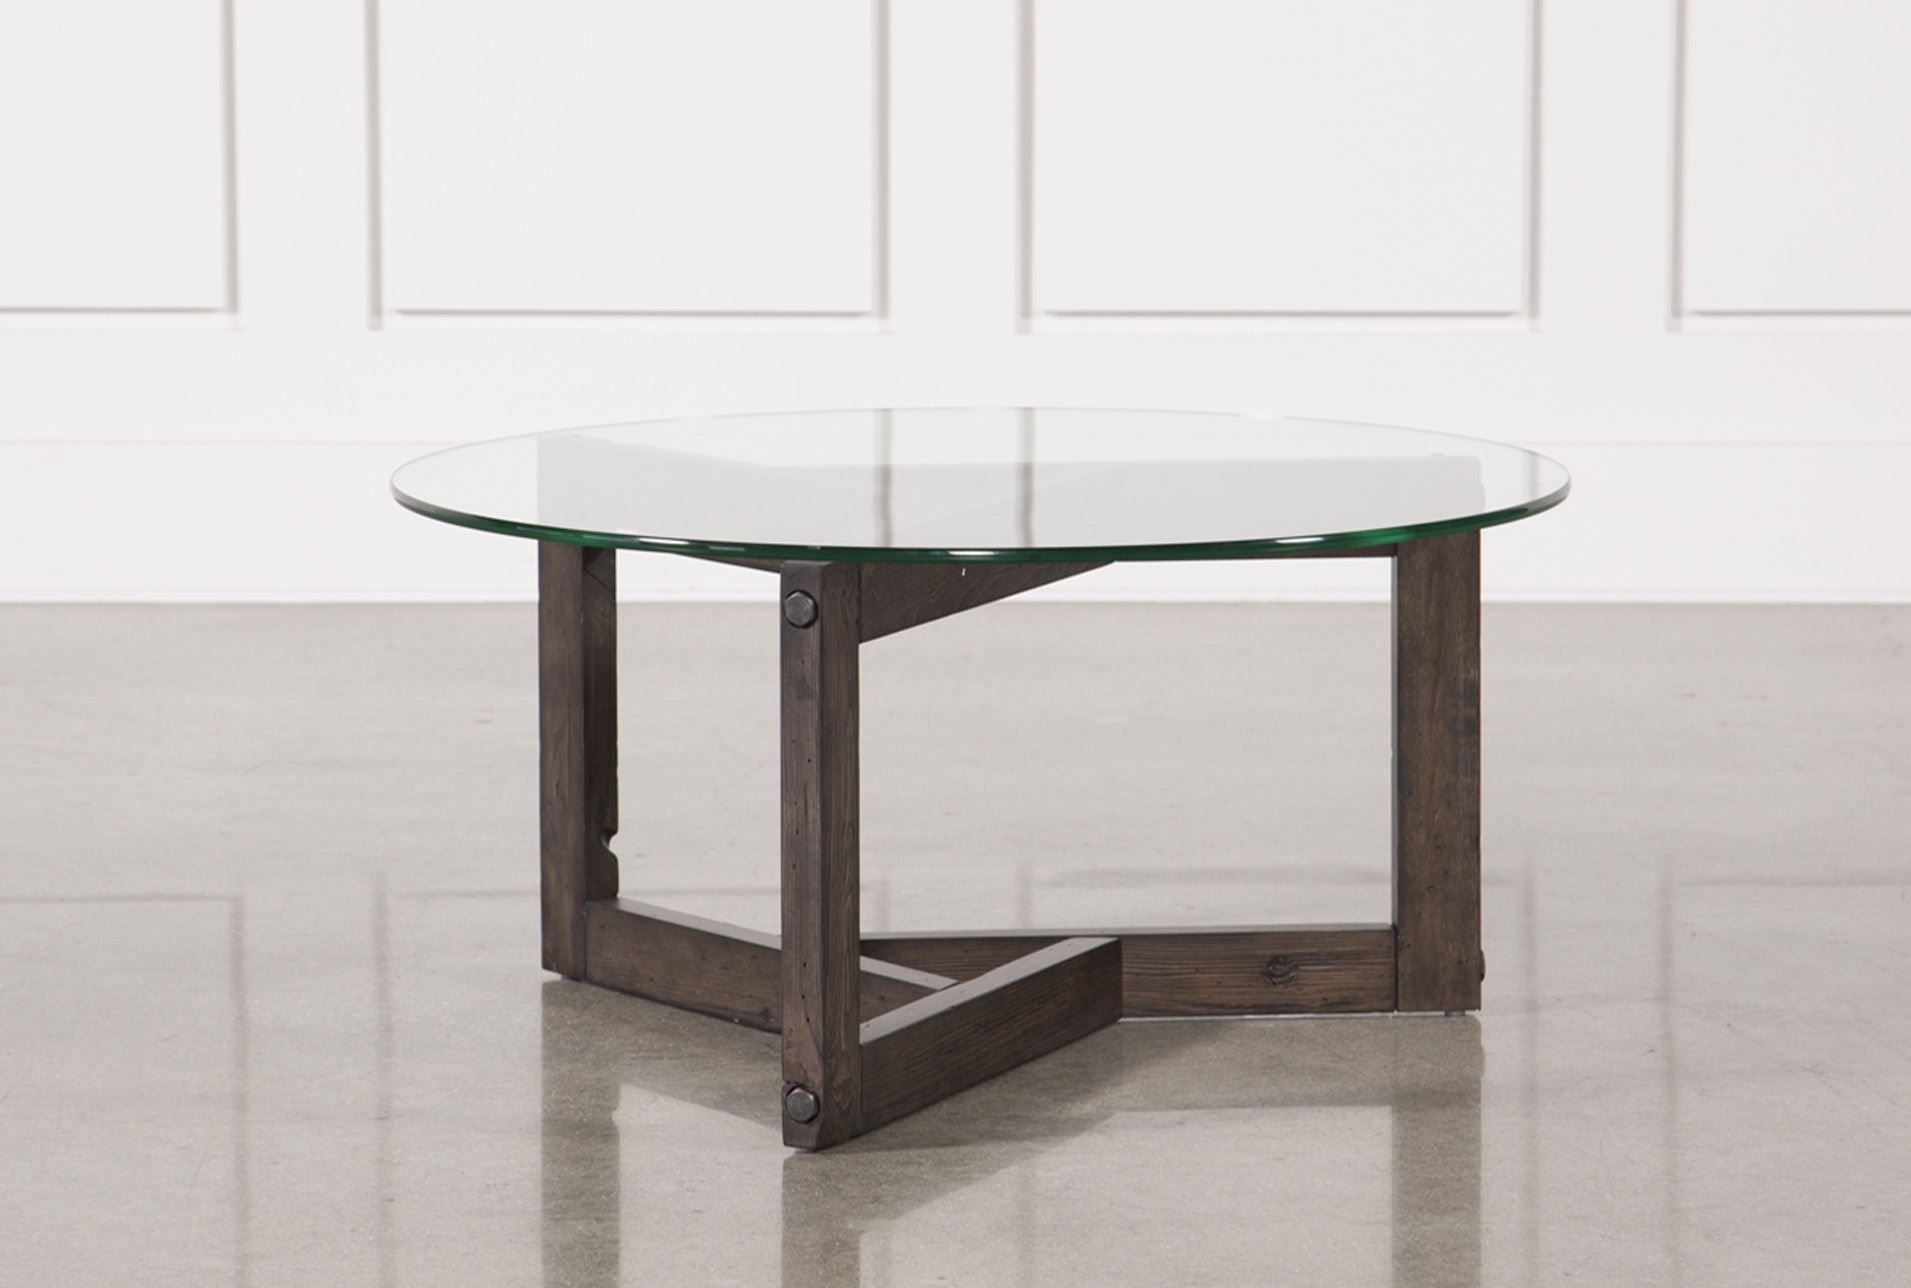 Pin By Beverly Newton On Furniture Table Round Cocktail Tables Indoor Furniture [ 1288 x 1911 Pixel ]